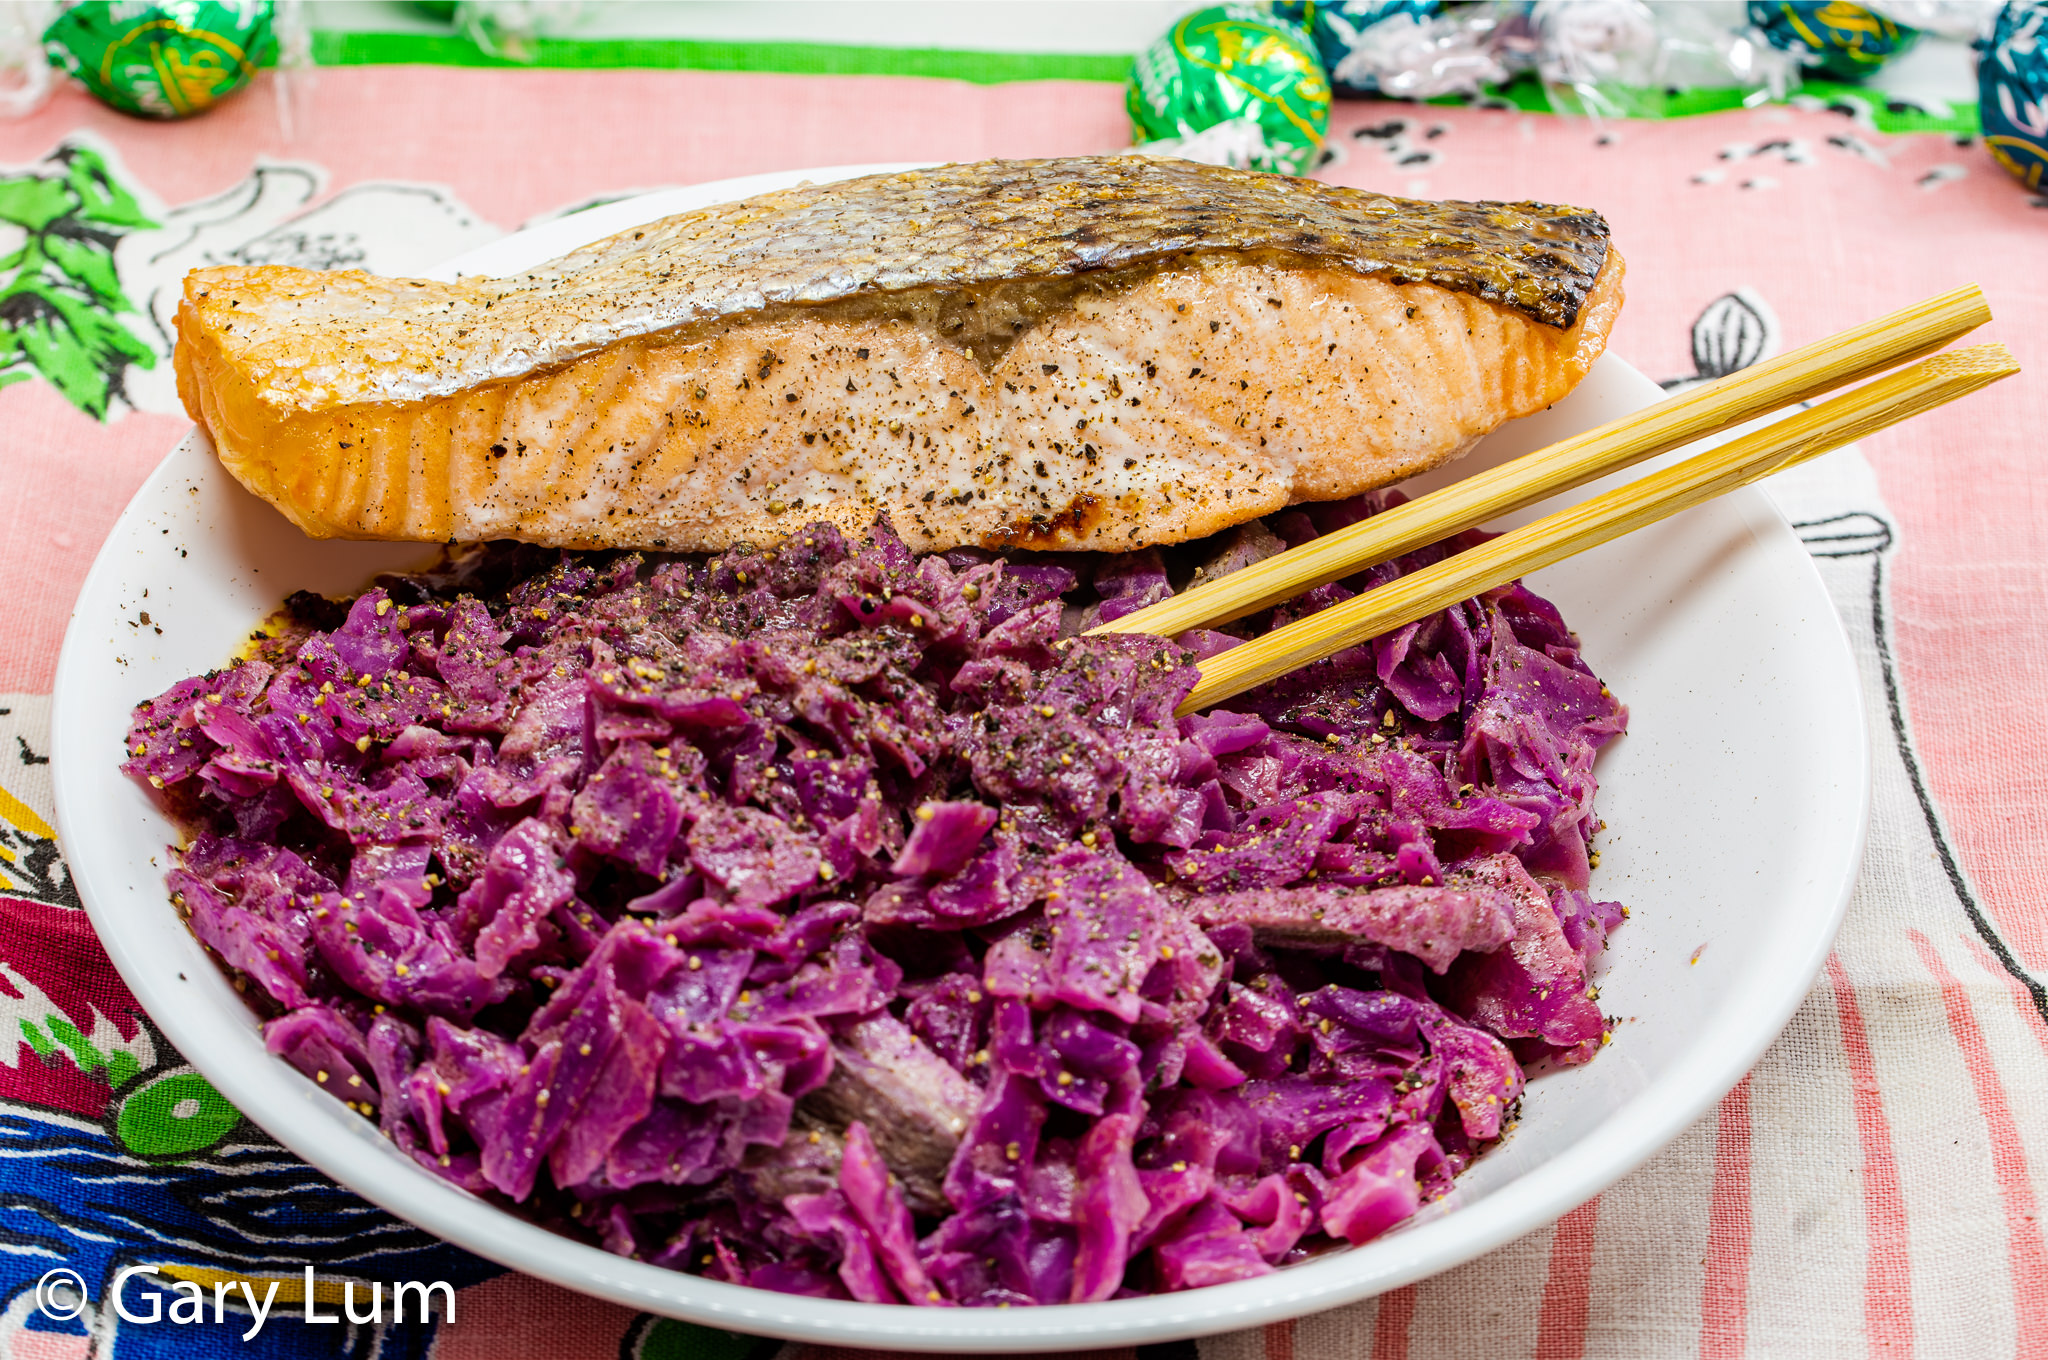 Oven-cooked salmon with leftover sous vide duck and curry red cabbage.